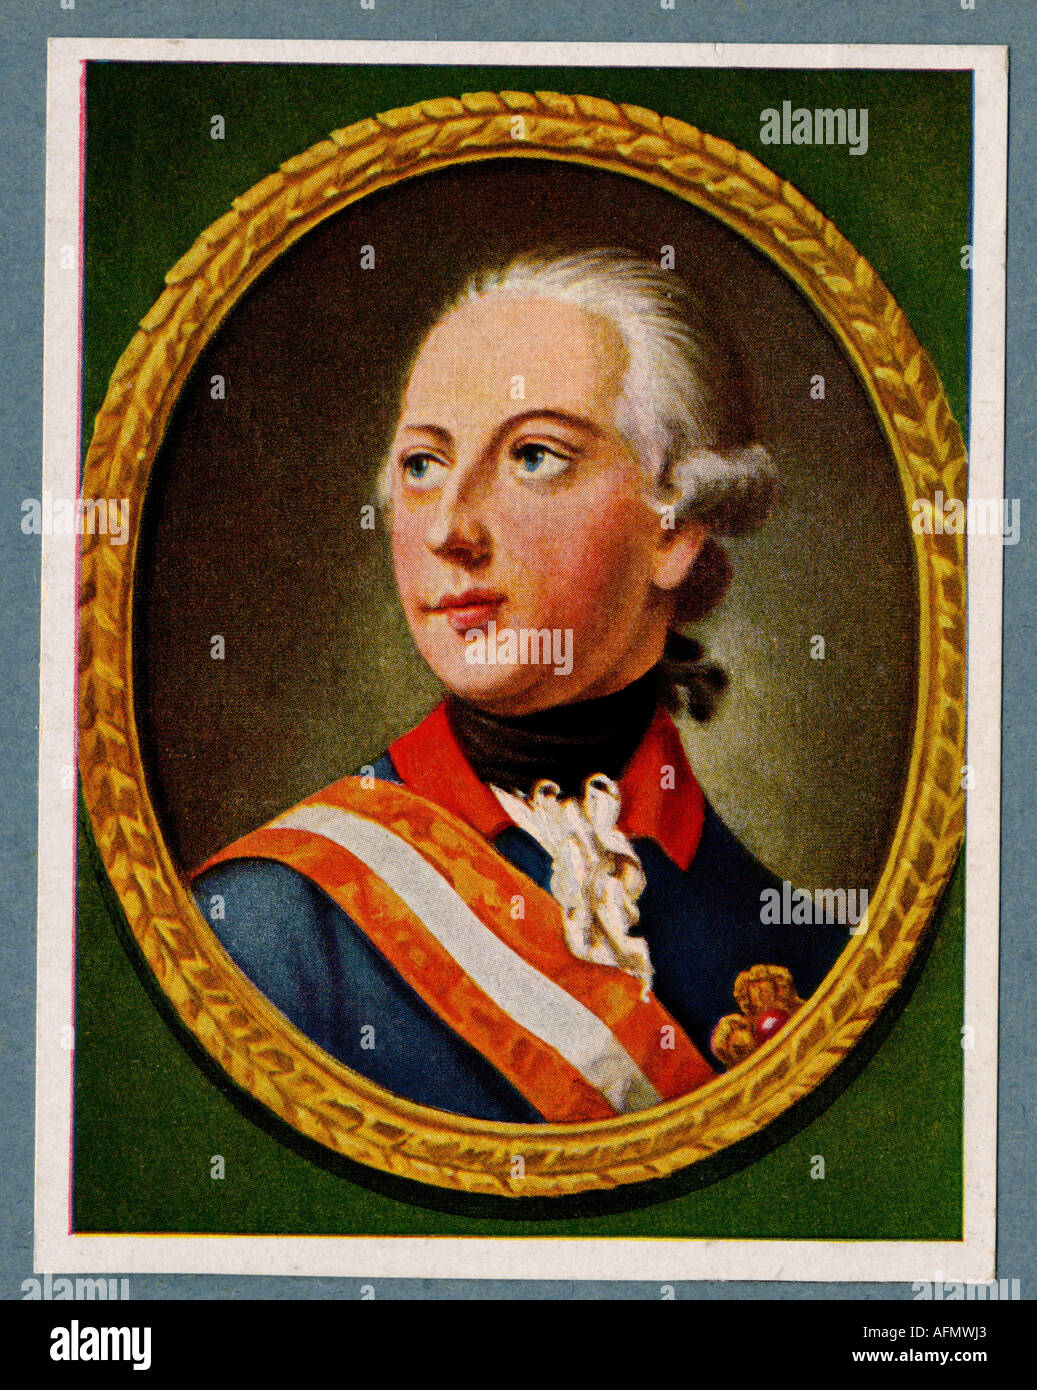 Joseph II., 13.3.1741 - 20.2.1790, Holy Roman Emperor 18.8.1765 - 20.2.1790, Portrait, print after painting by H.F. Stock Photo